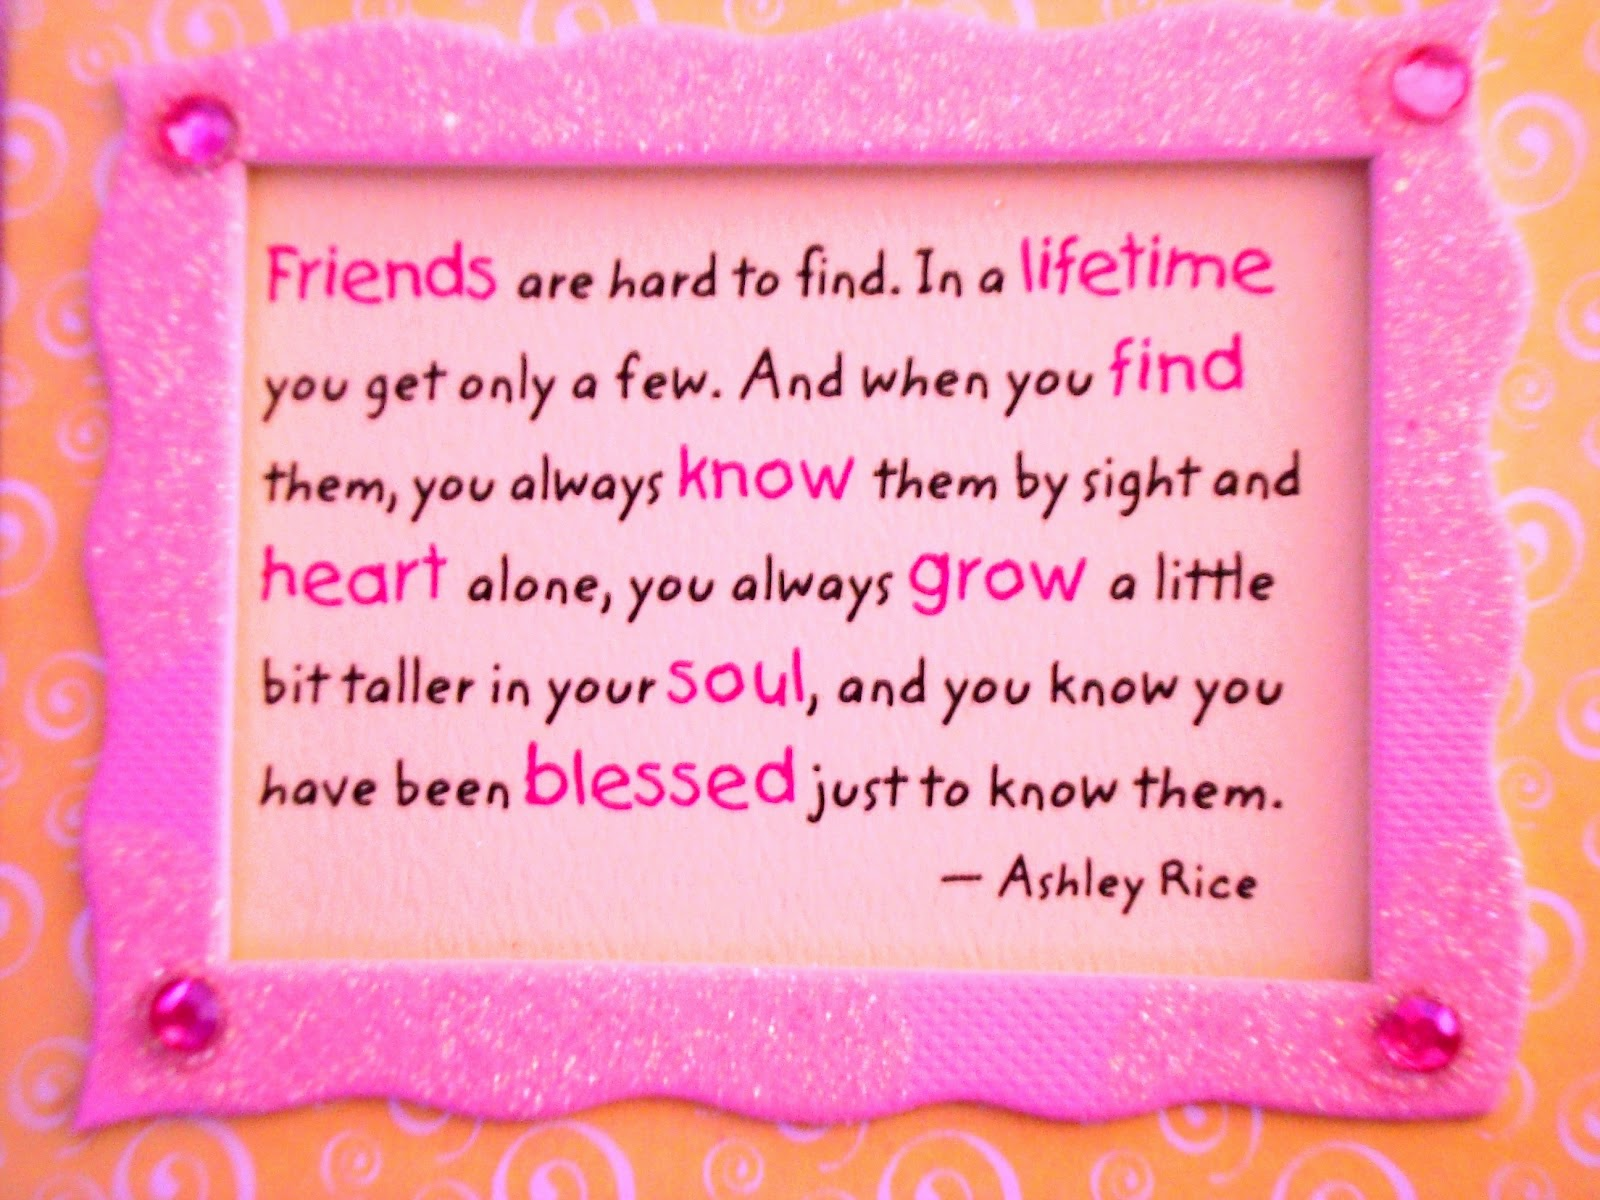 Outstanding friendship quotes